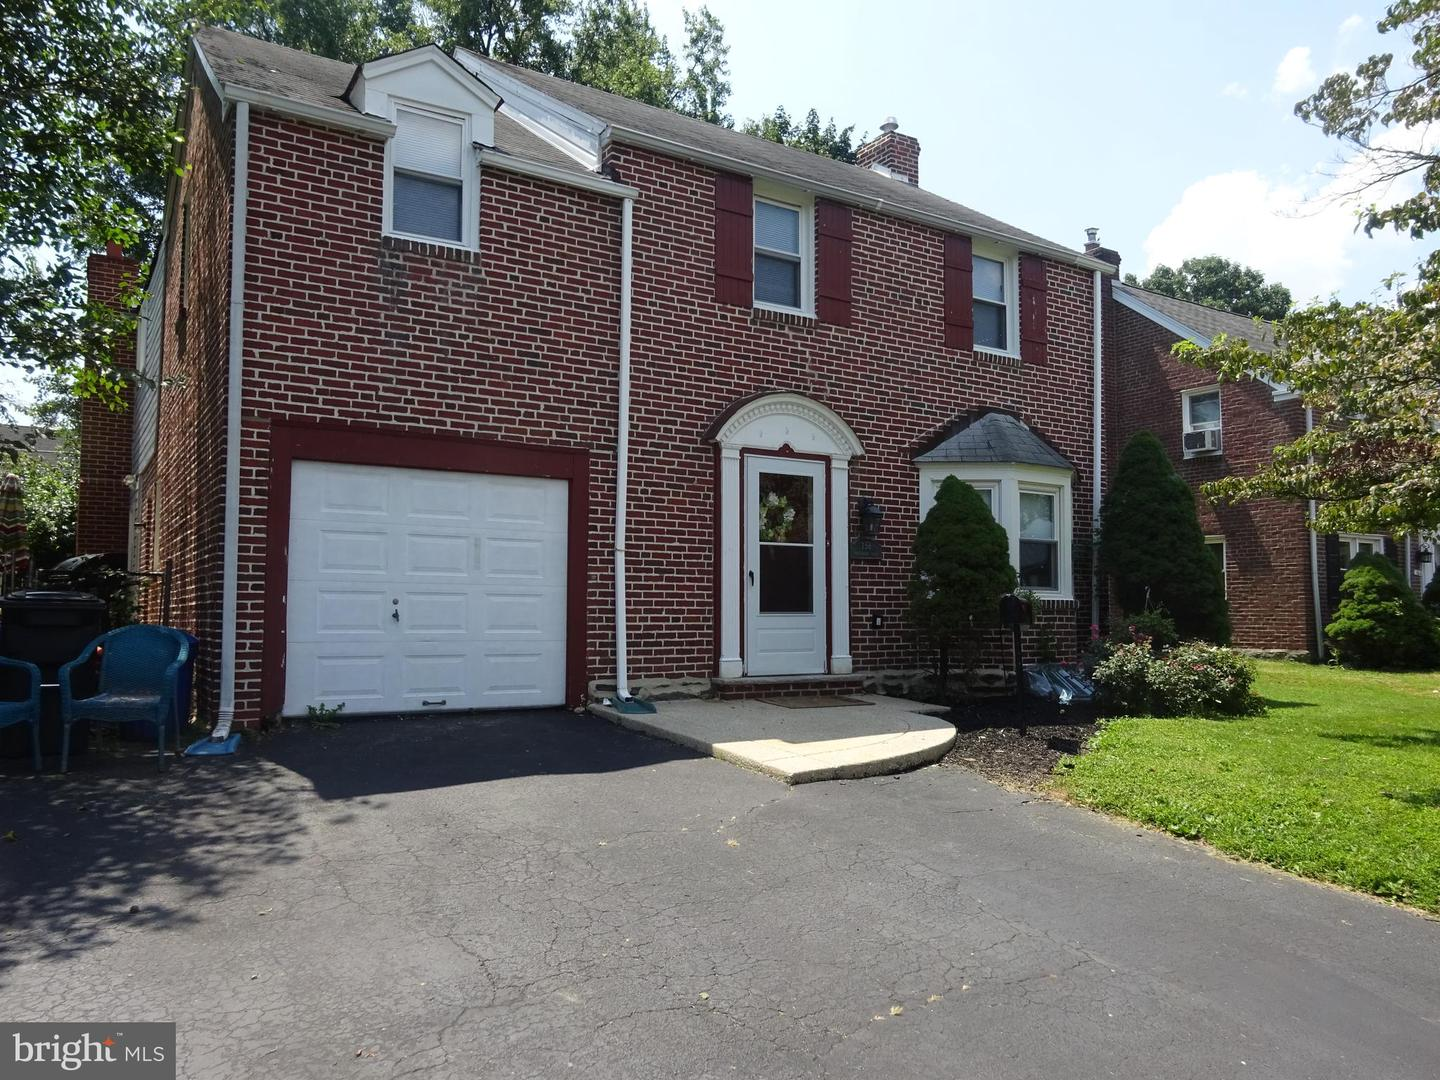 156 Friendship Road Drexel Hill, PA 19026